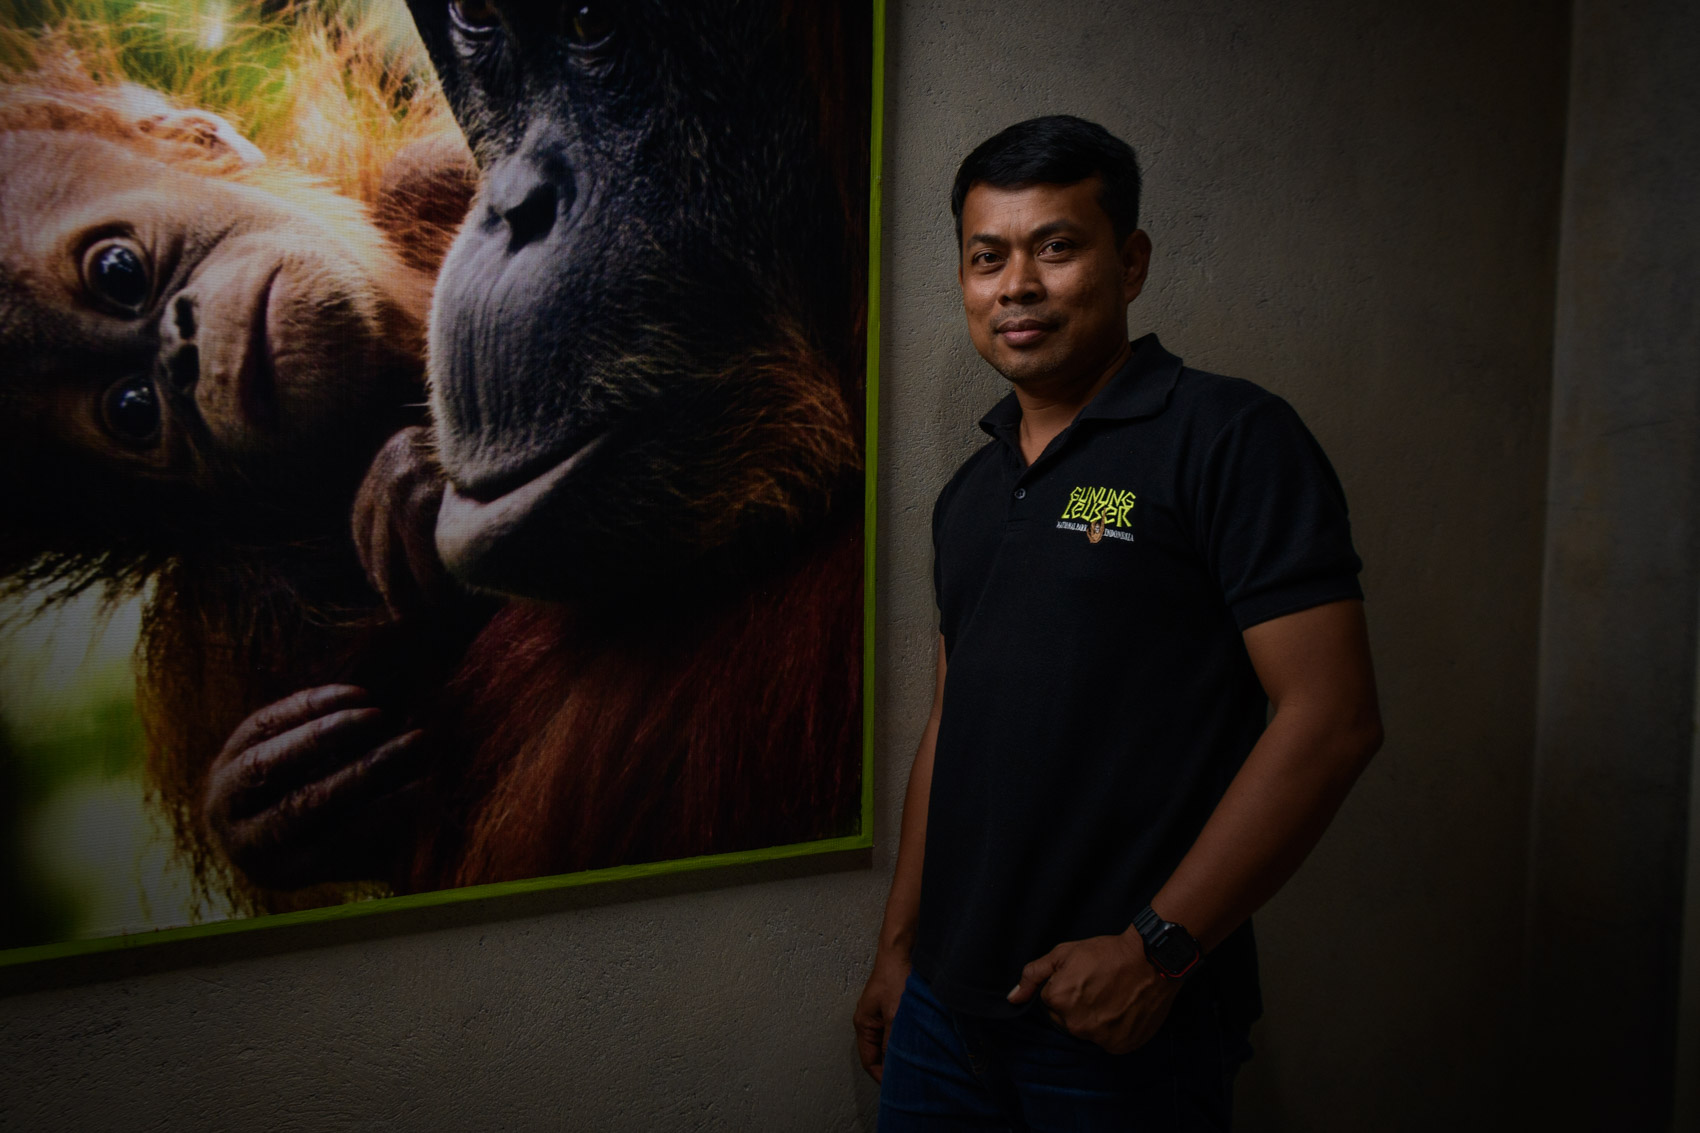 Panut Hadisiswoyo, founder of the Oranguatan Information Centre stands beside a picture of an orangutan